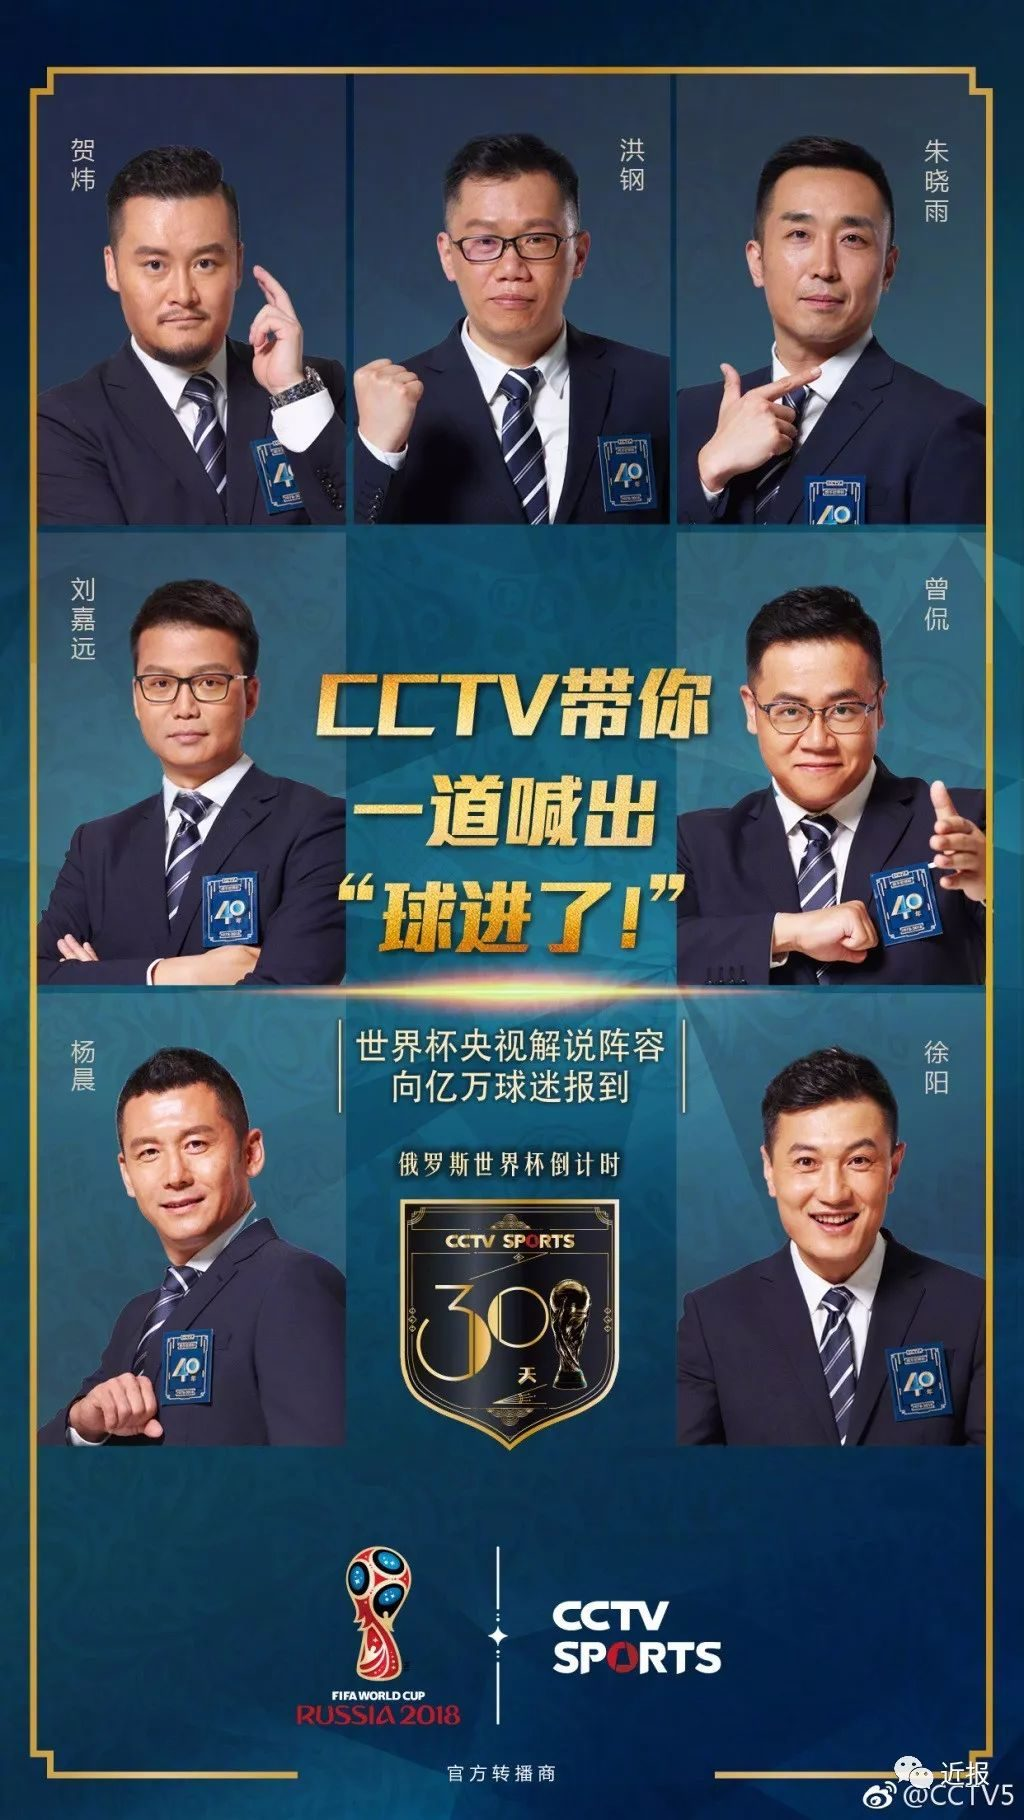 Countdown to one month! CCTV5 announces 2018 World Cup CCTV Super Commentary Team